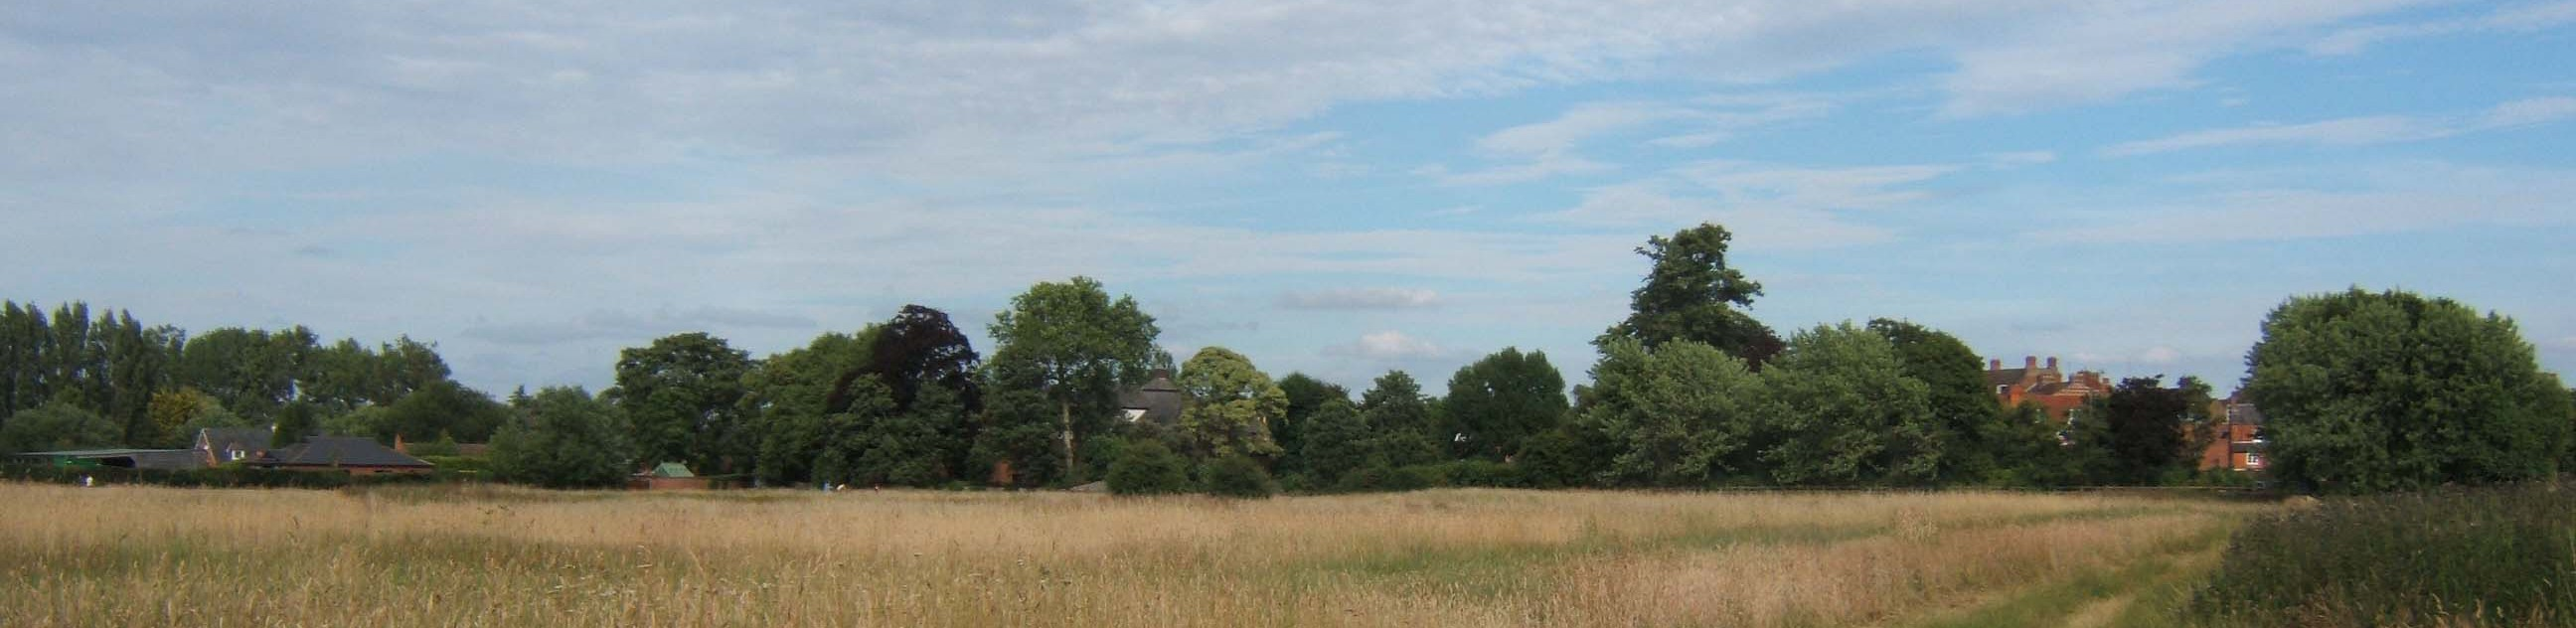 Summer 2010: a beautiful panoramic shot of Bury Field in the heart of Newport Pagnell – pic: Jack Reynolds